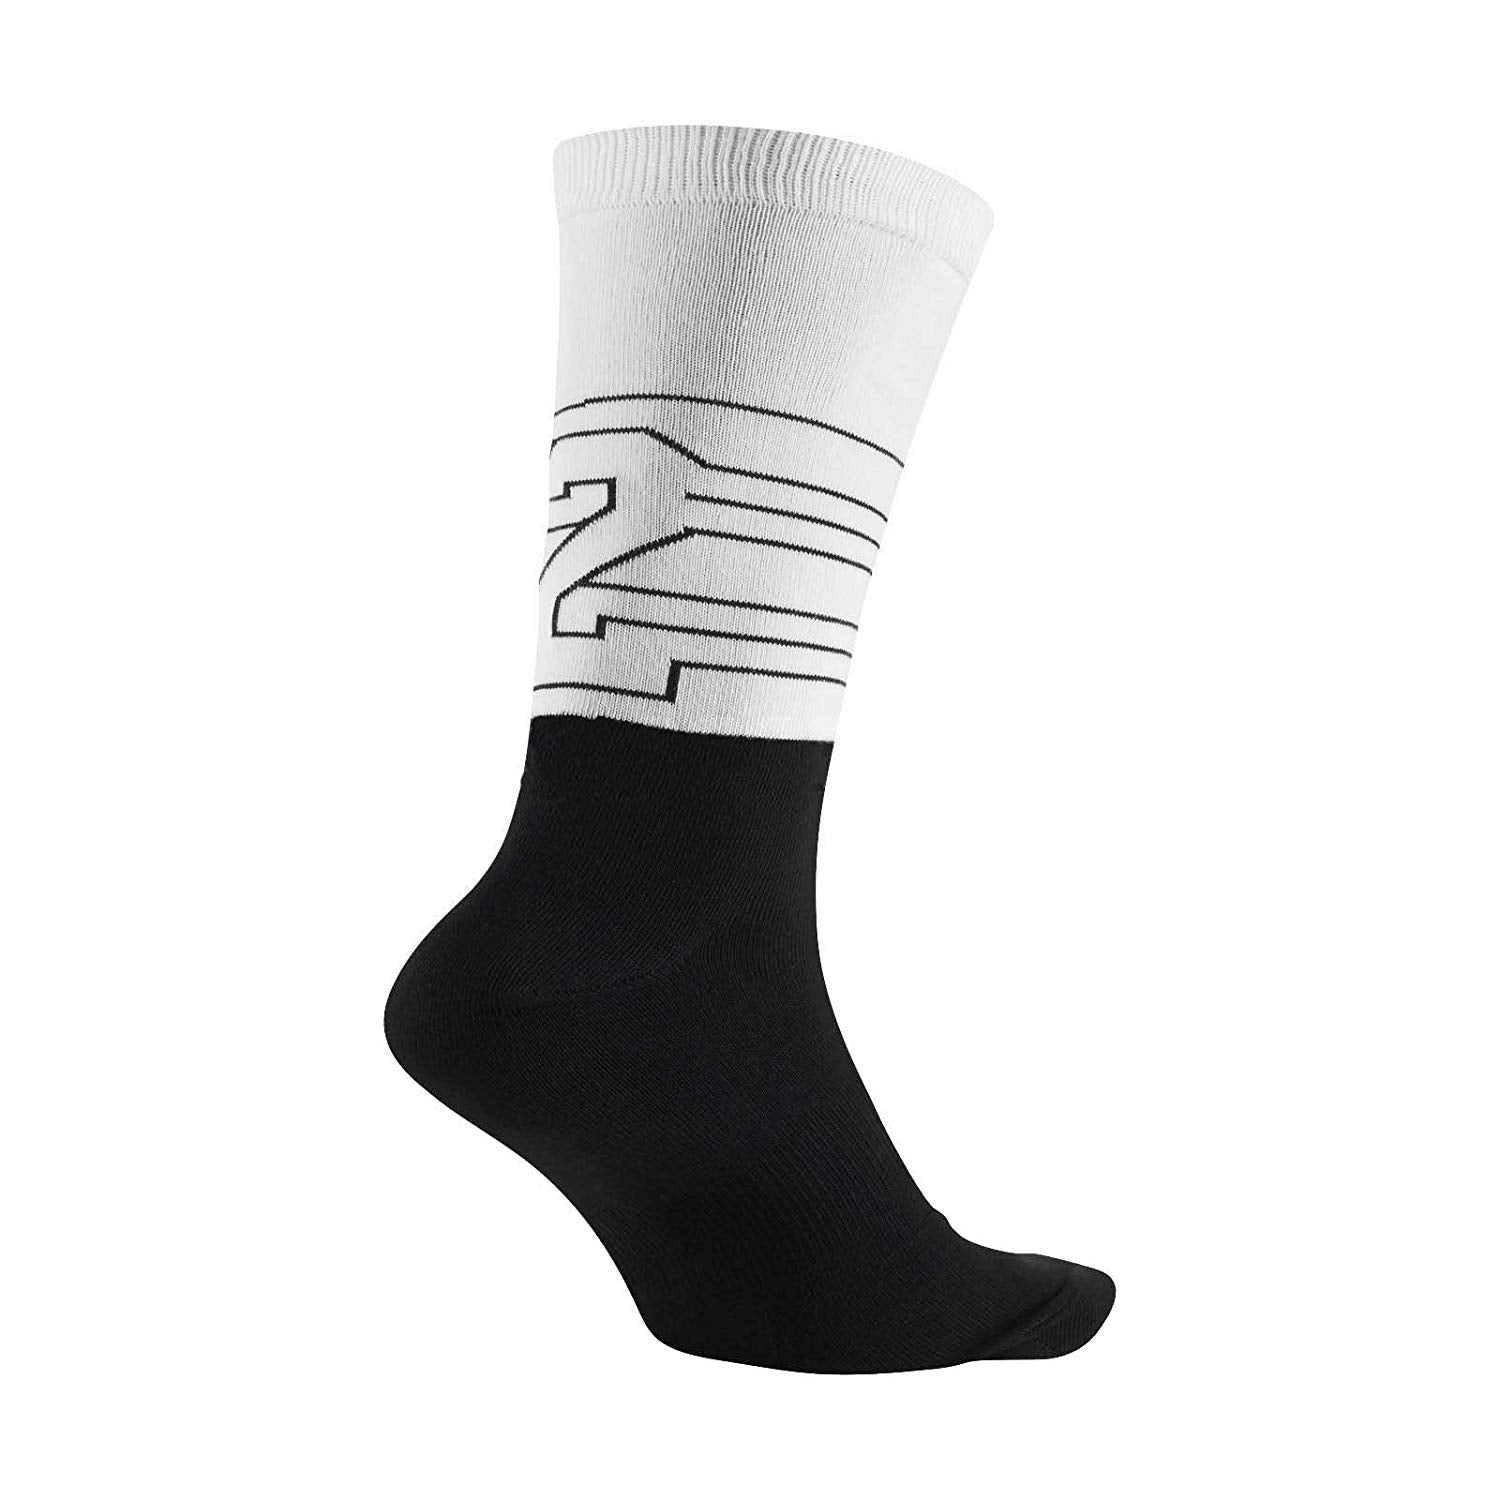 Nike Jordan Retro 13 Black/White Men's Crew Socks Size Medium (6-8)